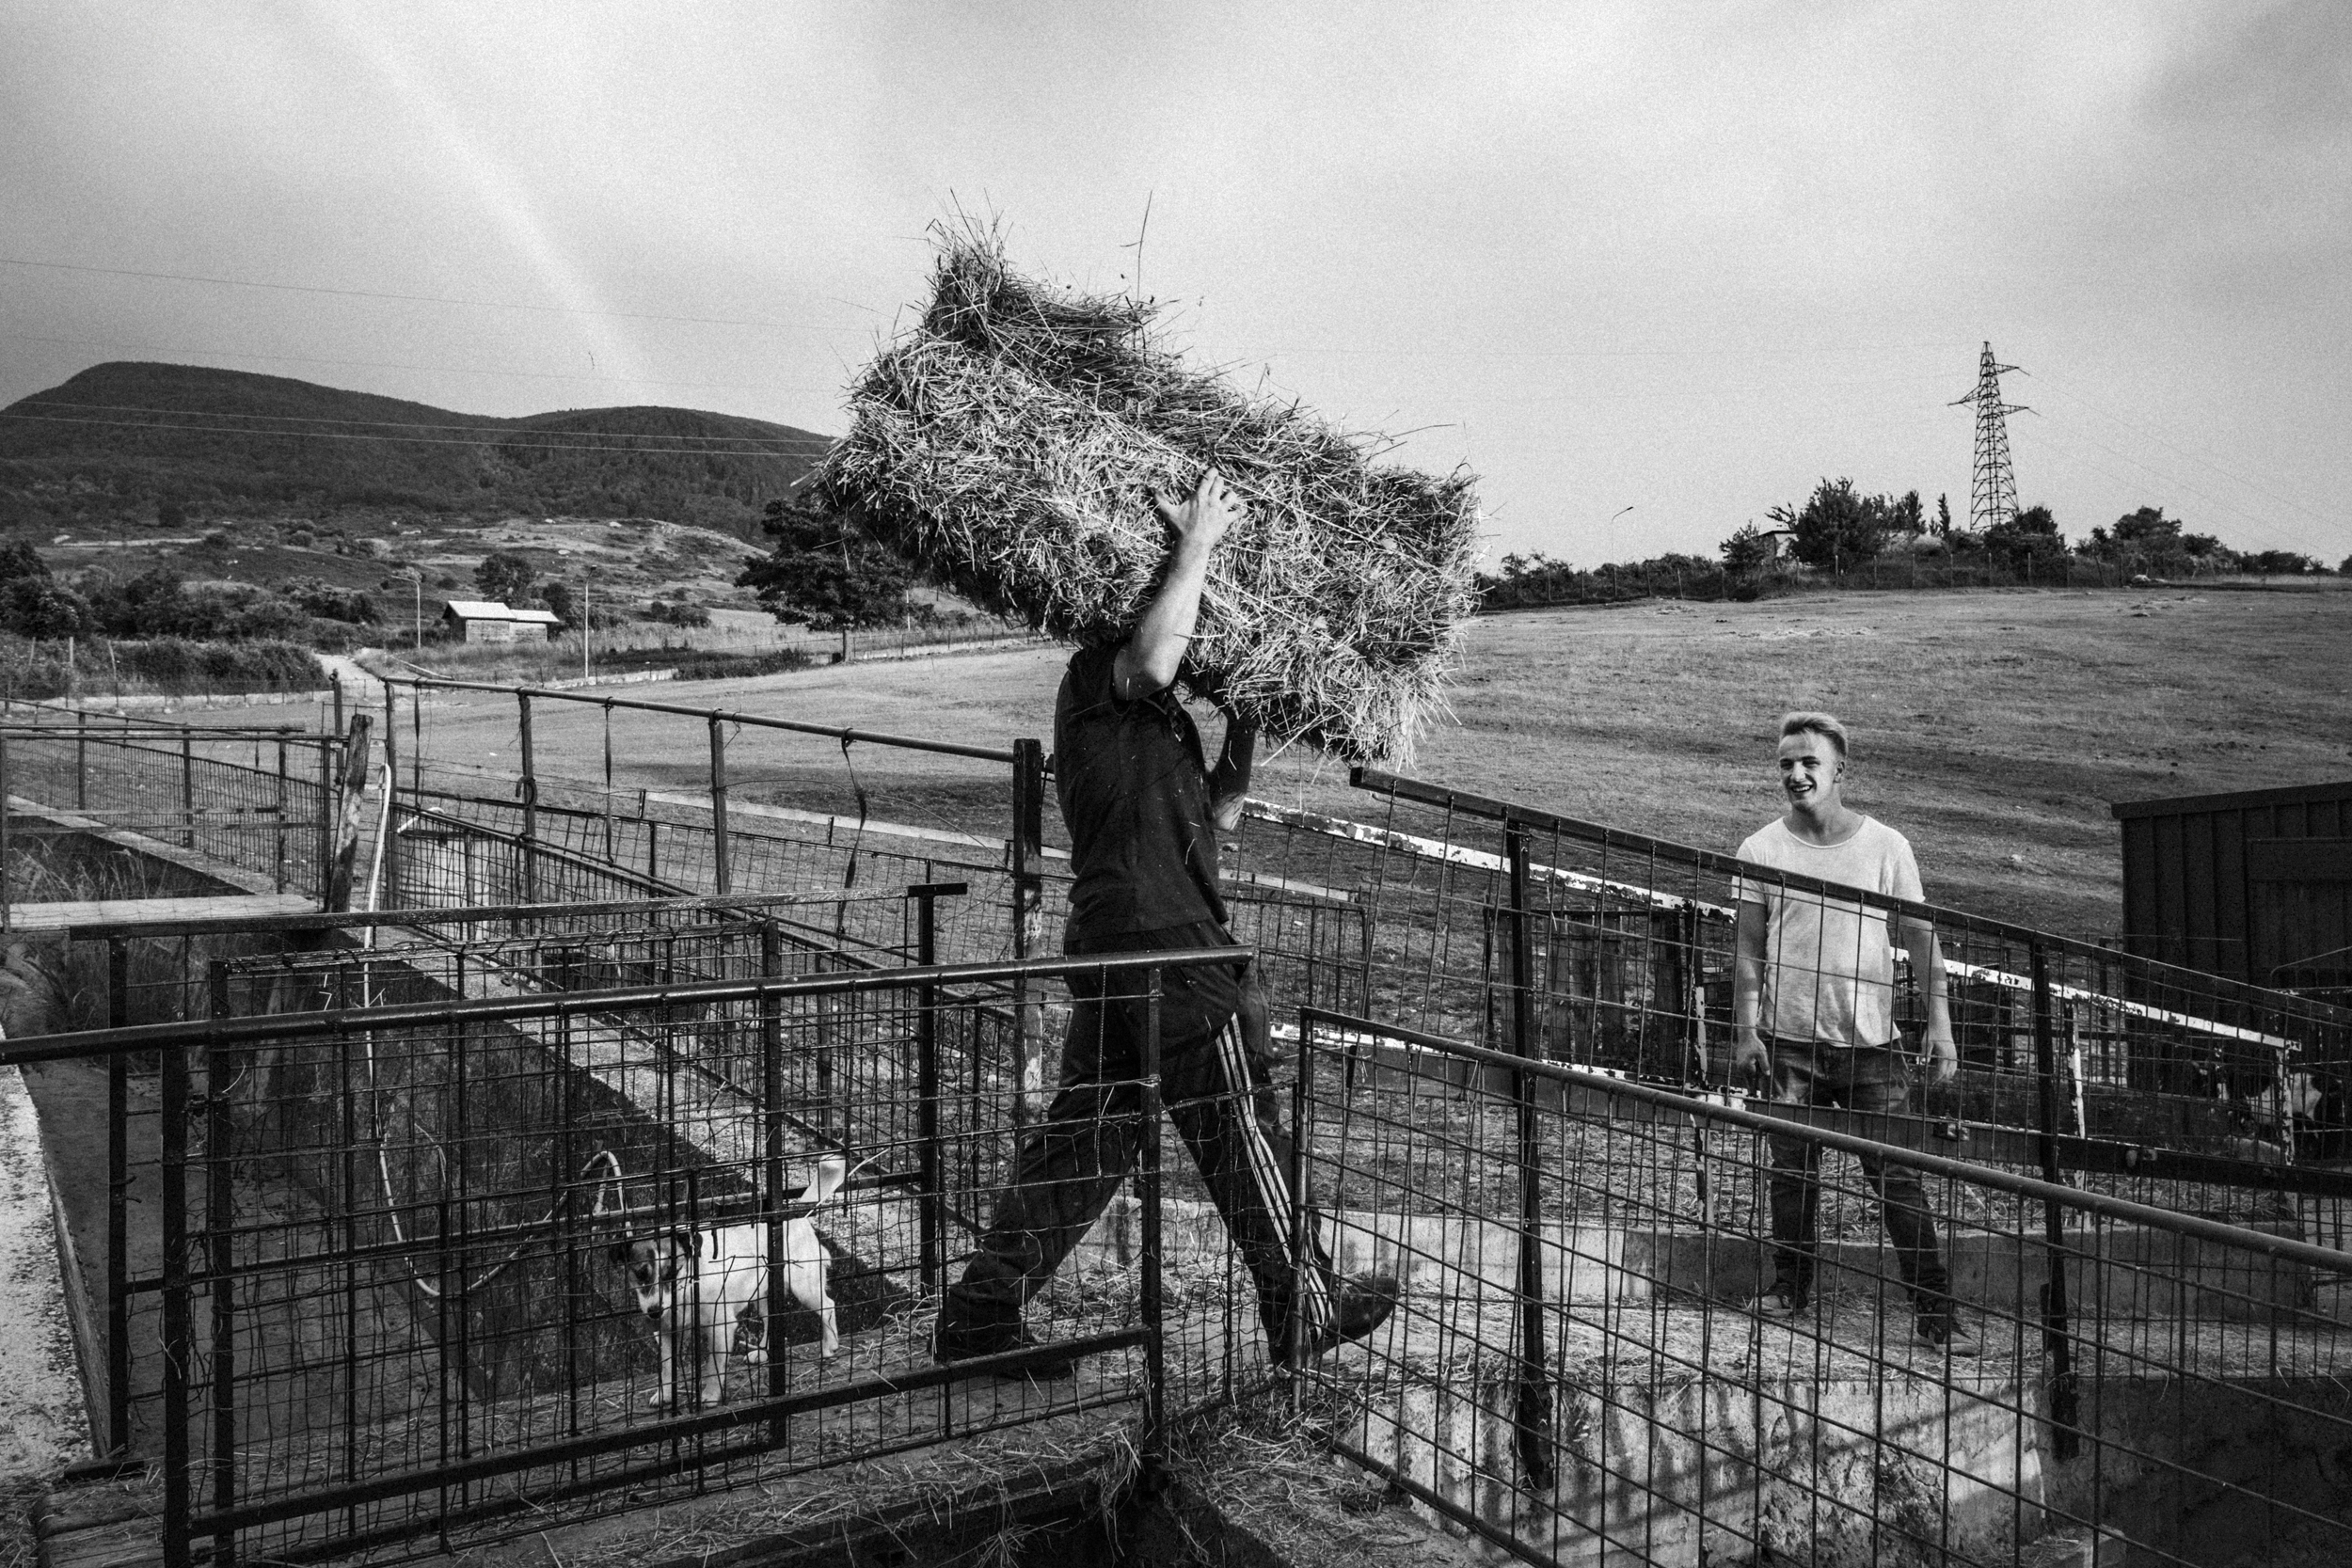 Sant'Angelo del Pesco (IS), Italy - June 2017. In the farm of the Gentile family, summer activities related to securing the provision of hay for winter are going on. In the village, the Gentile family is one of the few who breeds animals.